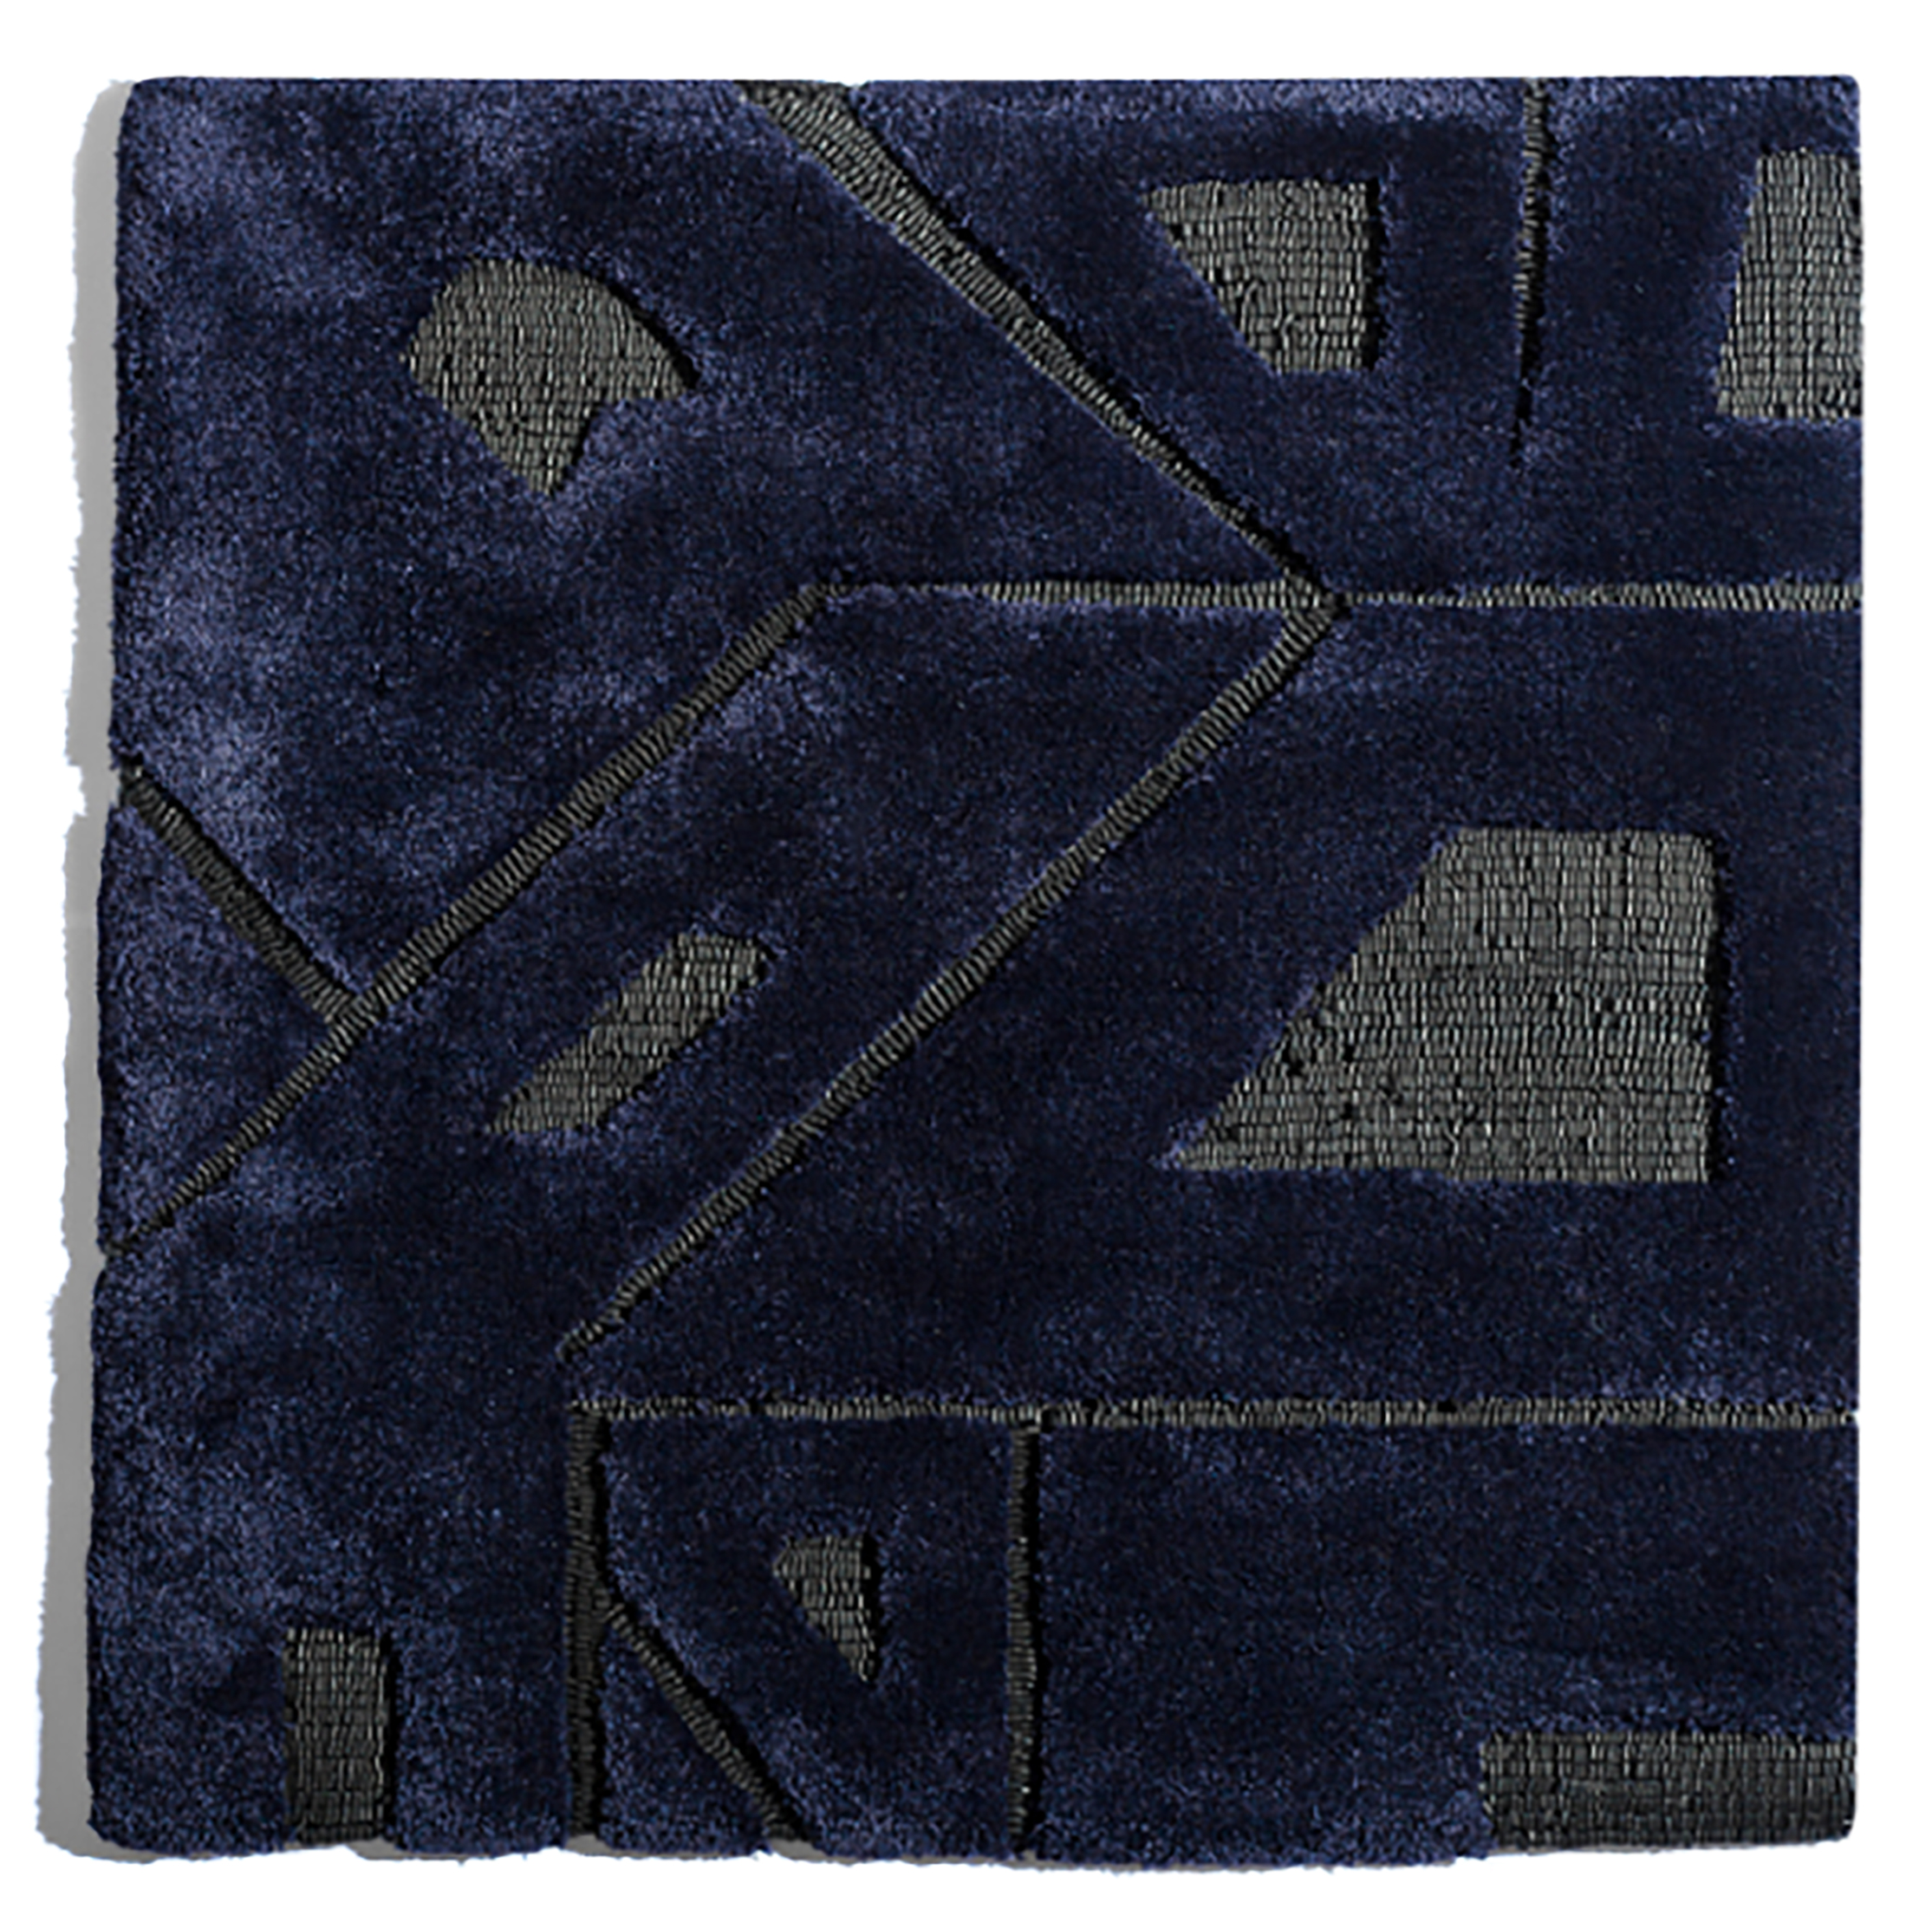 Hand-Tufted  rug, bamboo and leather blend, PhB design